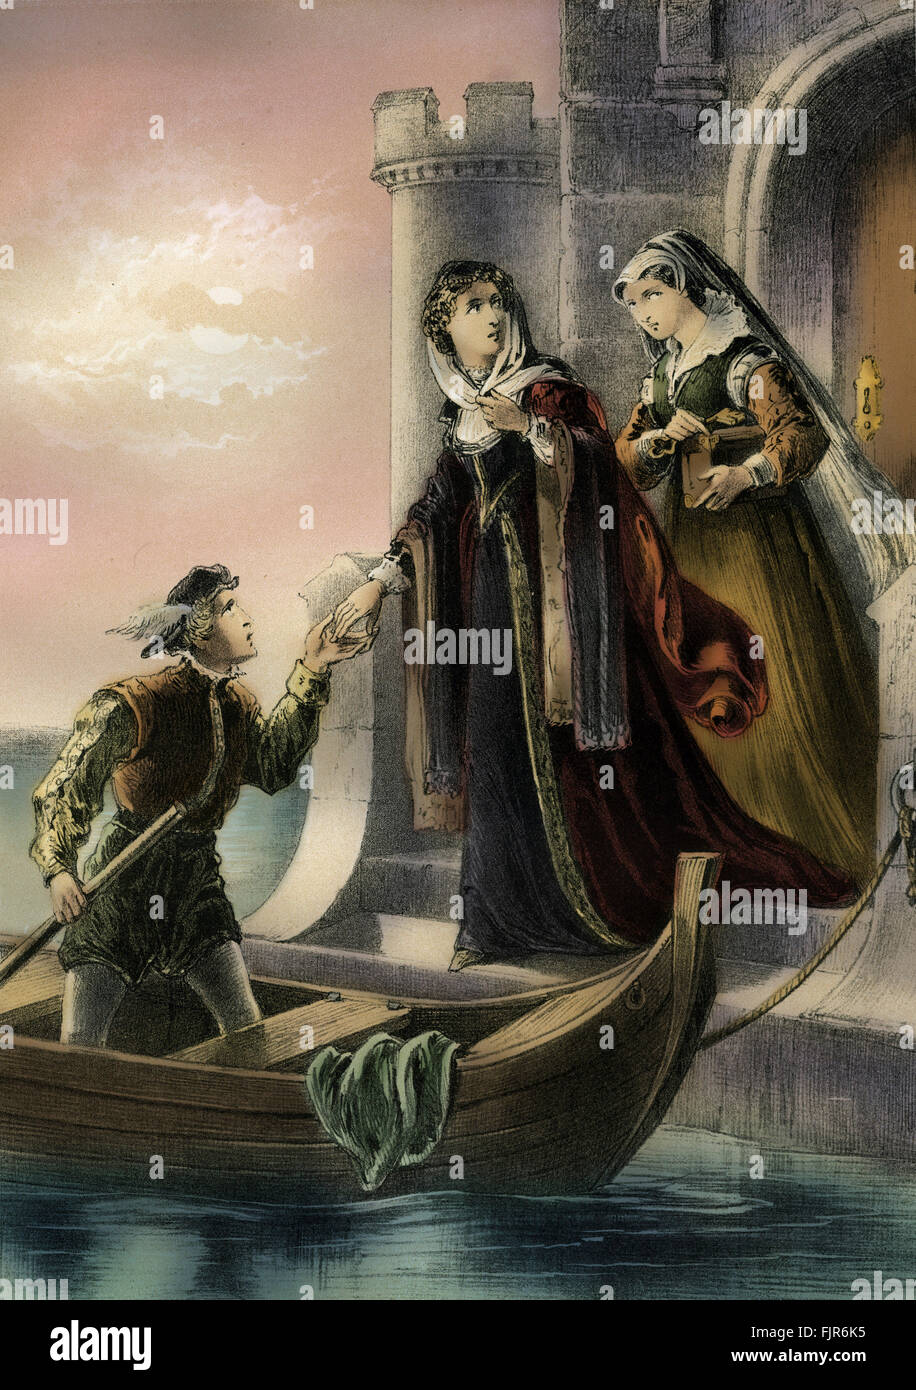 Mary Queen of Scots was imprisoned within the Glassin Tower of Loch Leven Castle  in 1567 by Sir William Douglas. - Stock Image